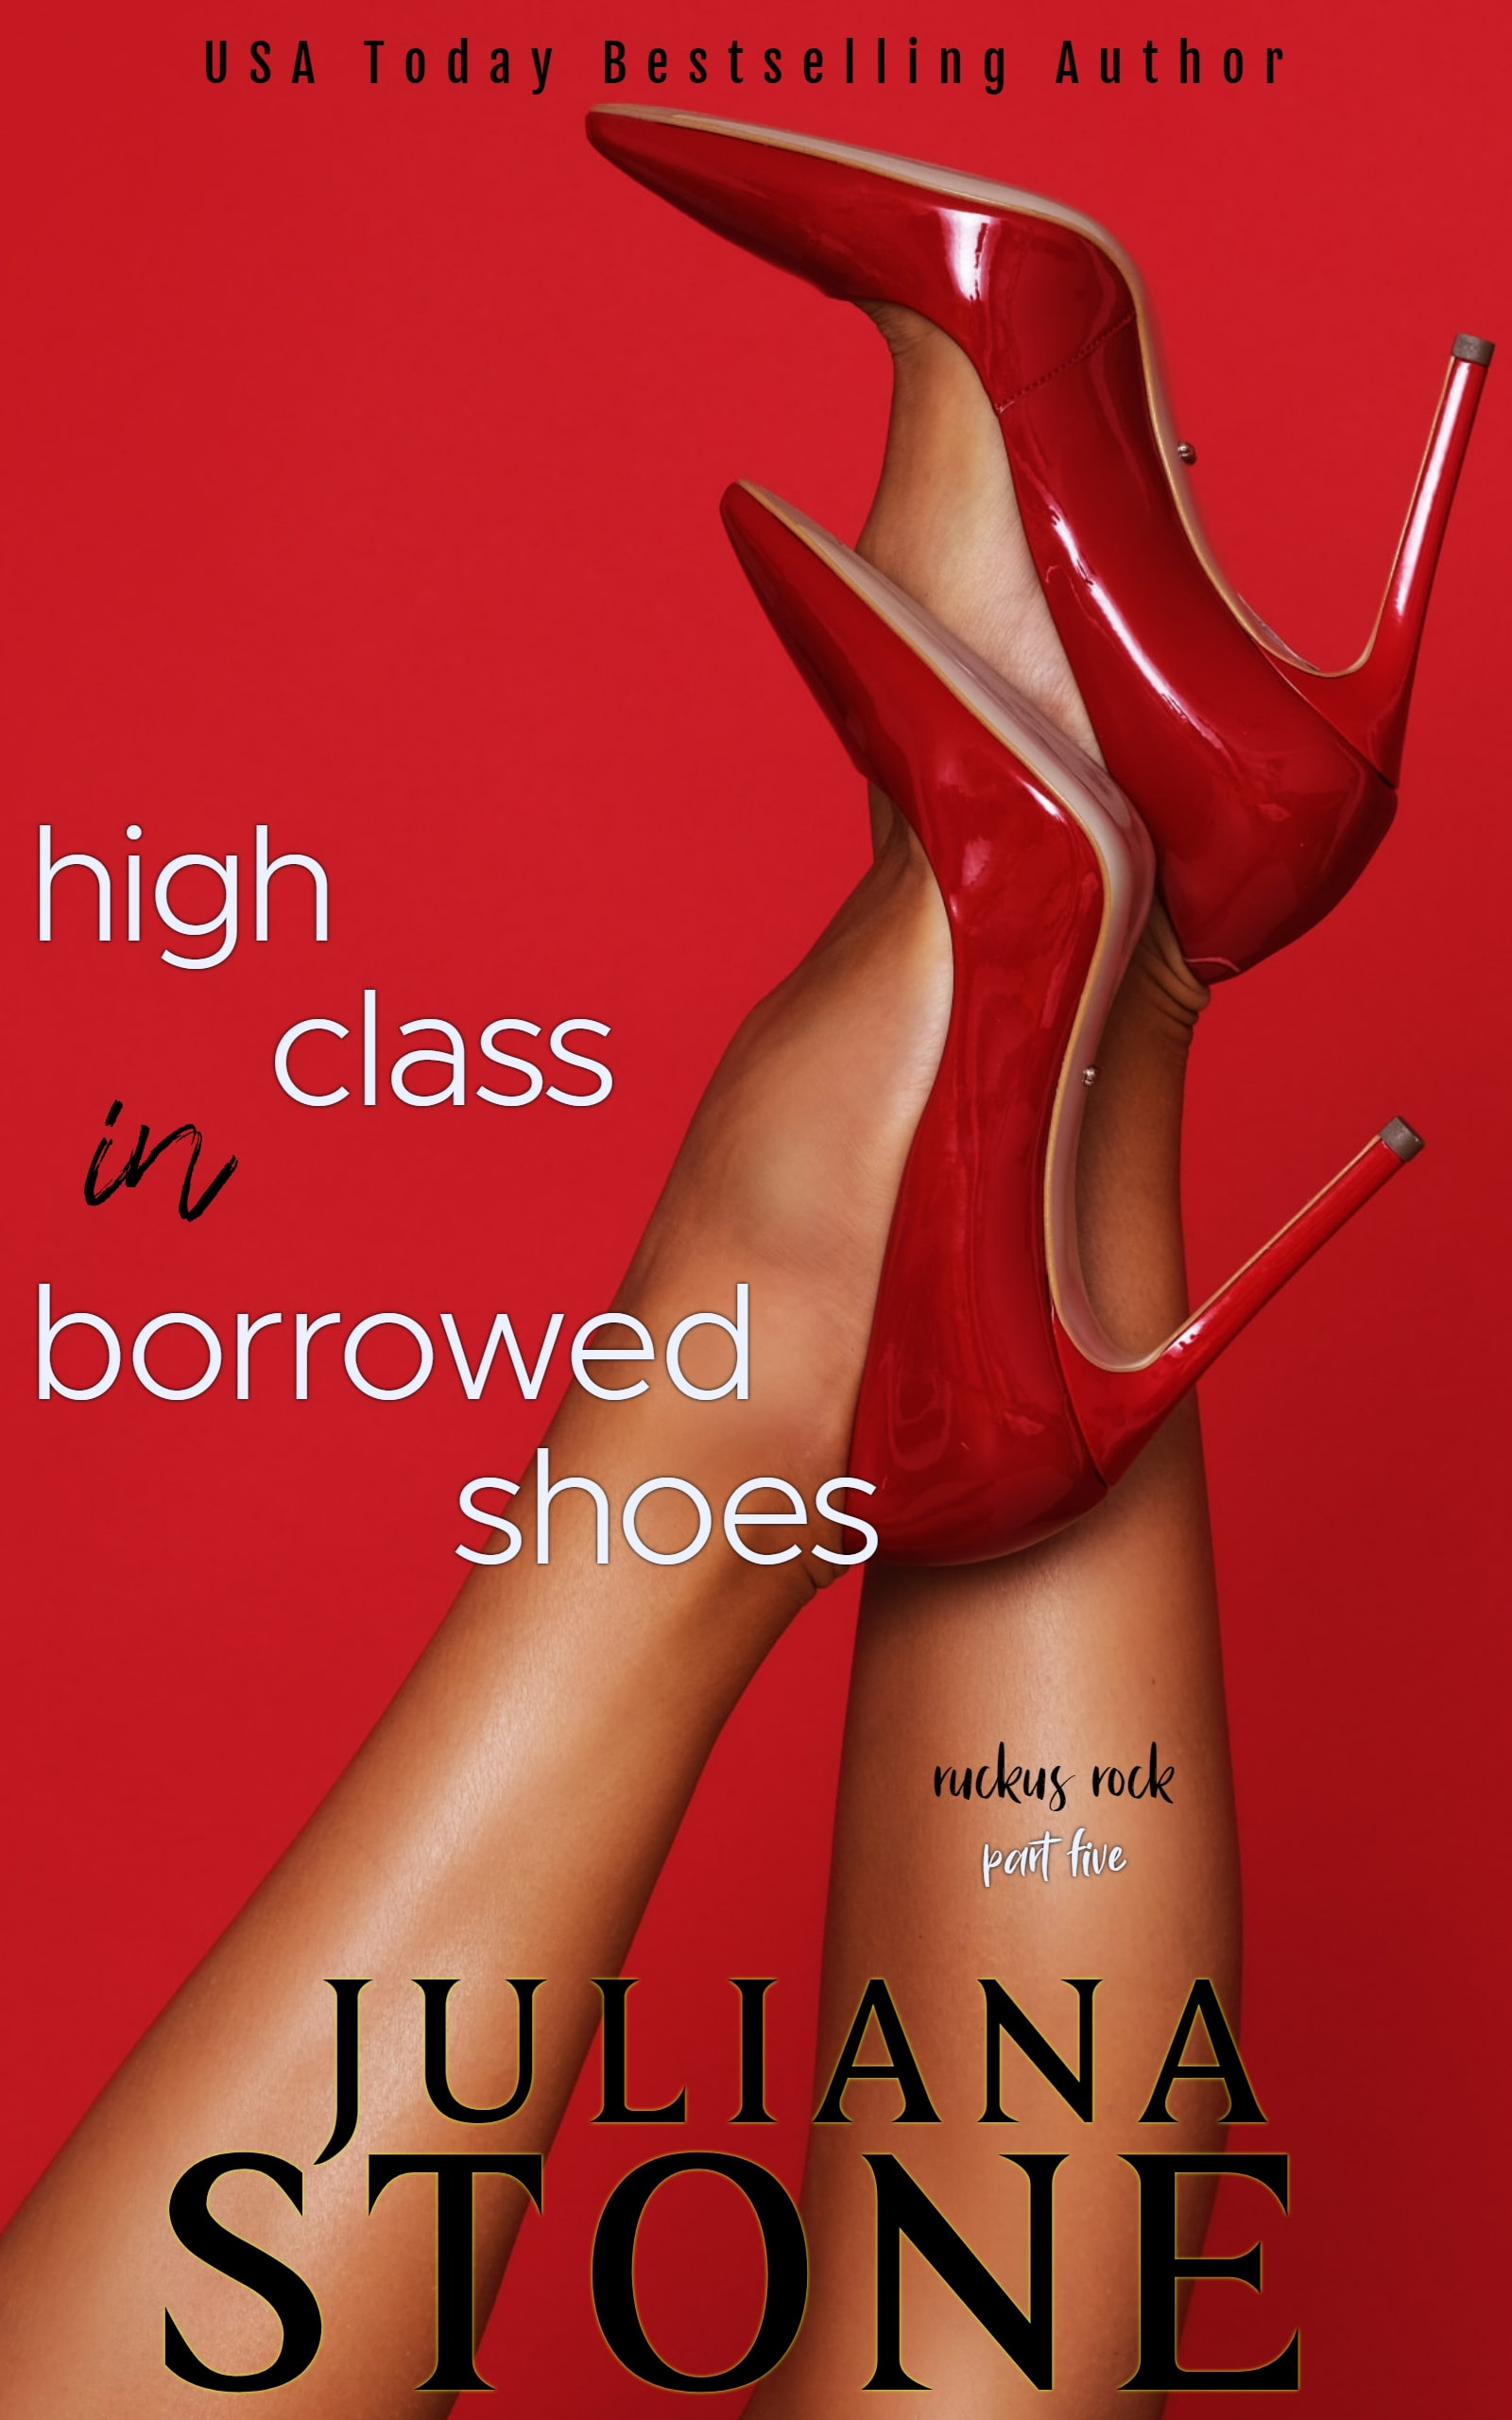 High Class In Borrowed Shoes Part Five by Juliana Stone